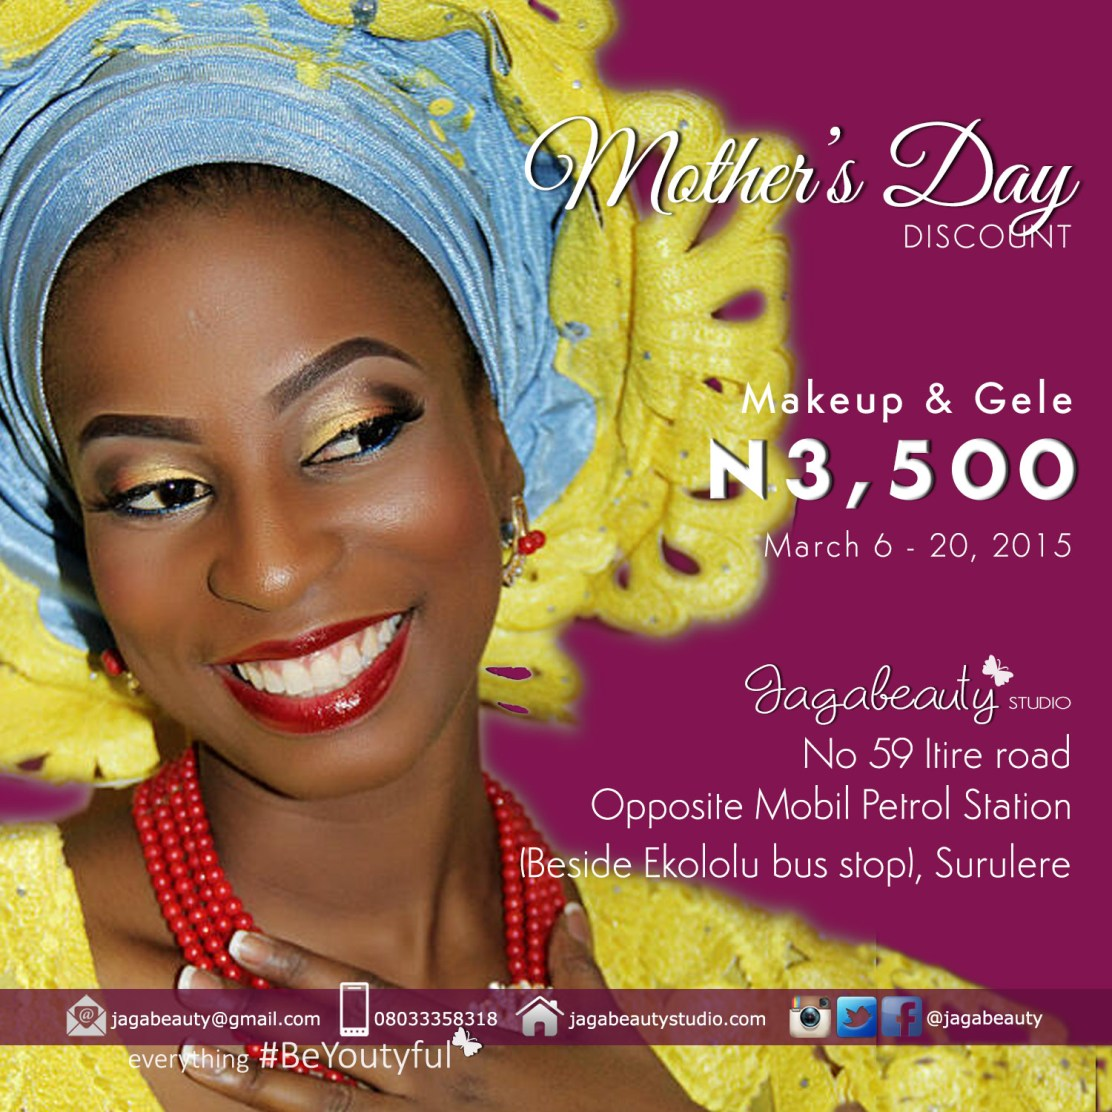 Revised-Mothers-Day-Makeup-&-Gele-Discount-VConnectNG-Jagabeauty-2